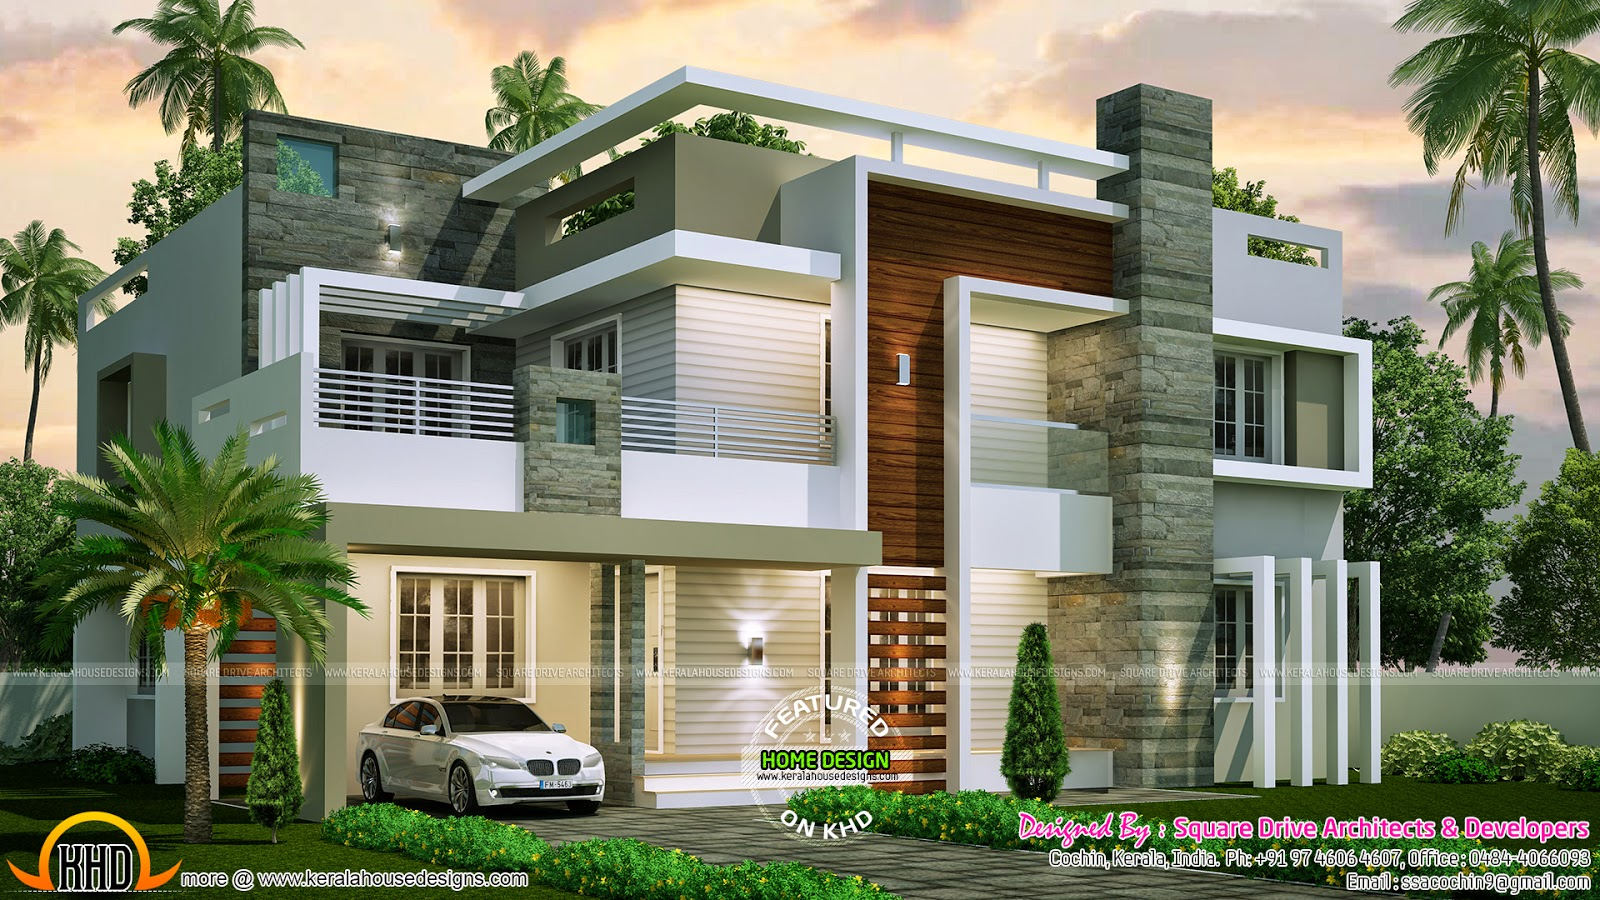 4 bedroom contemporary home design kerala home design for Architect home plans